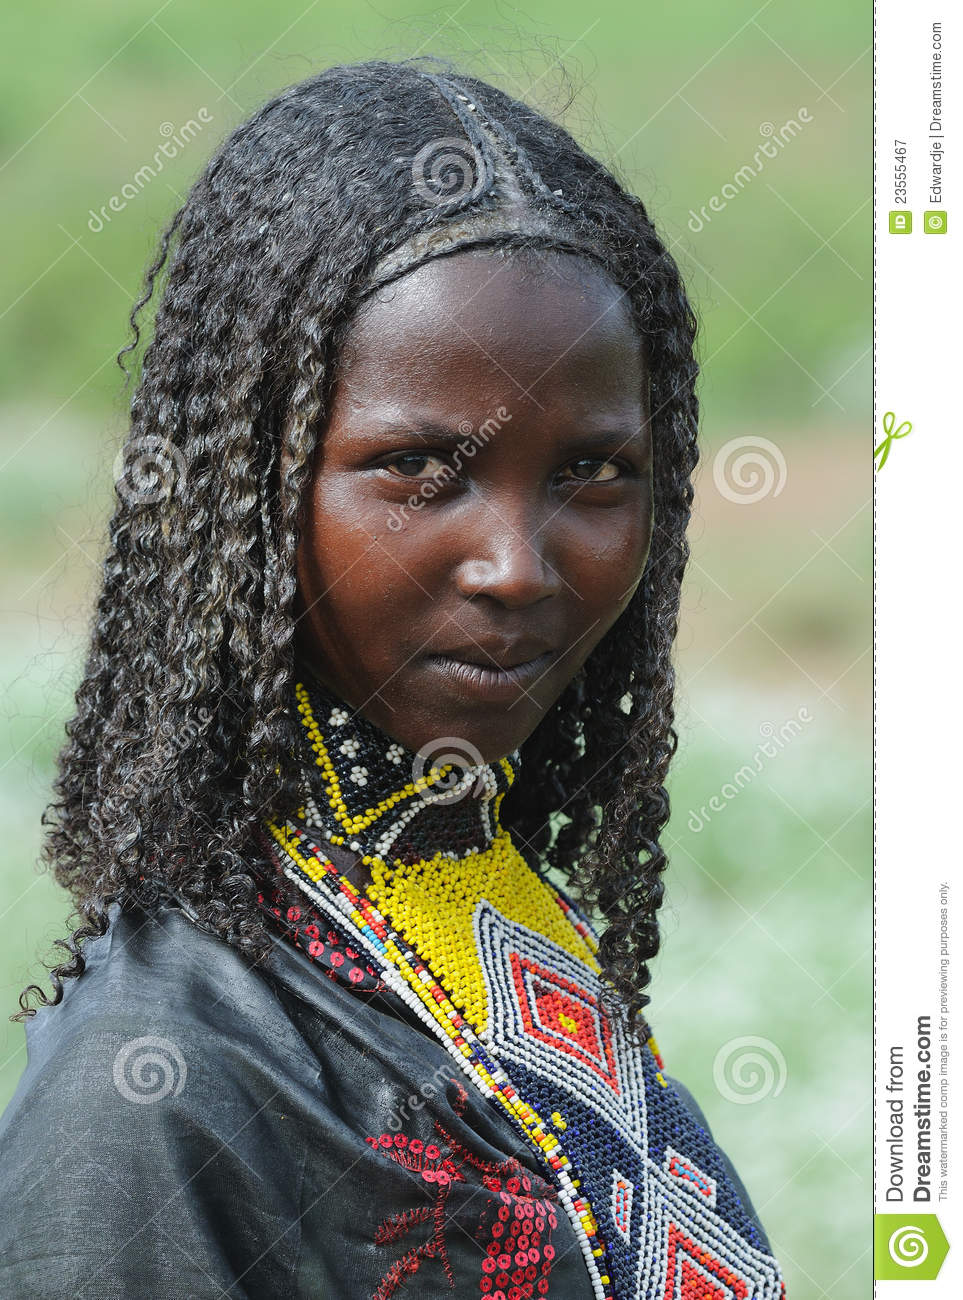 Ethiopia People Pictures 68